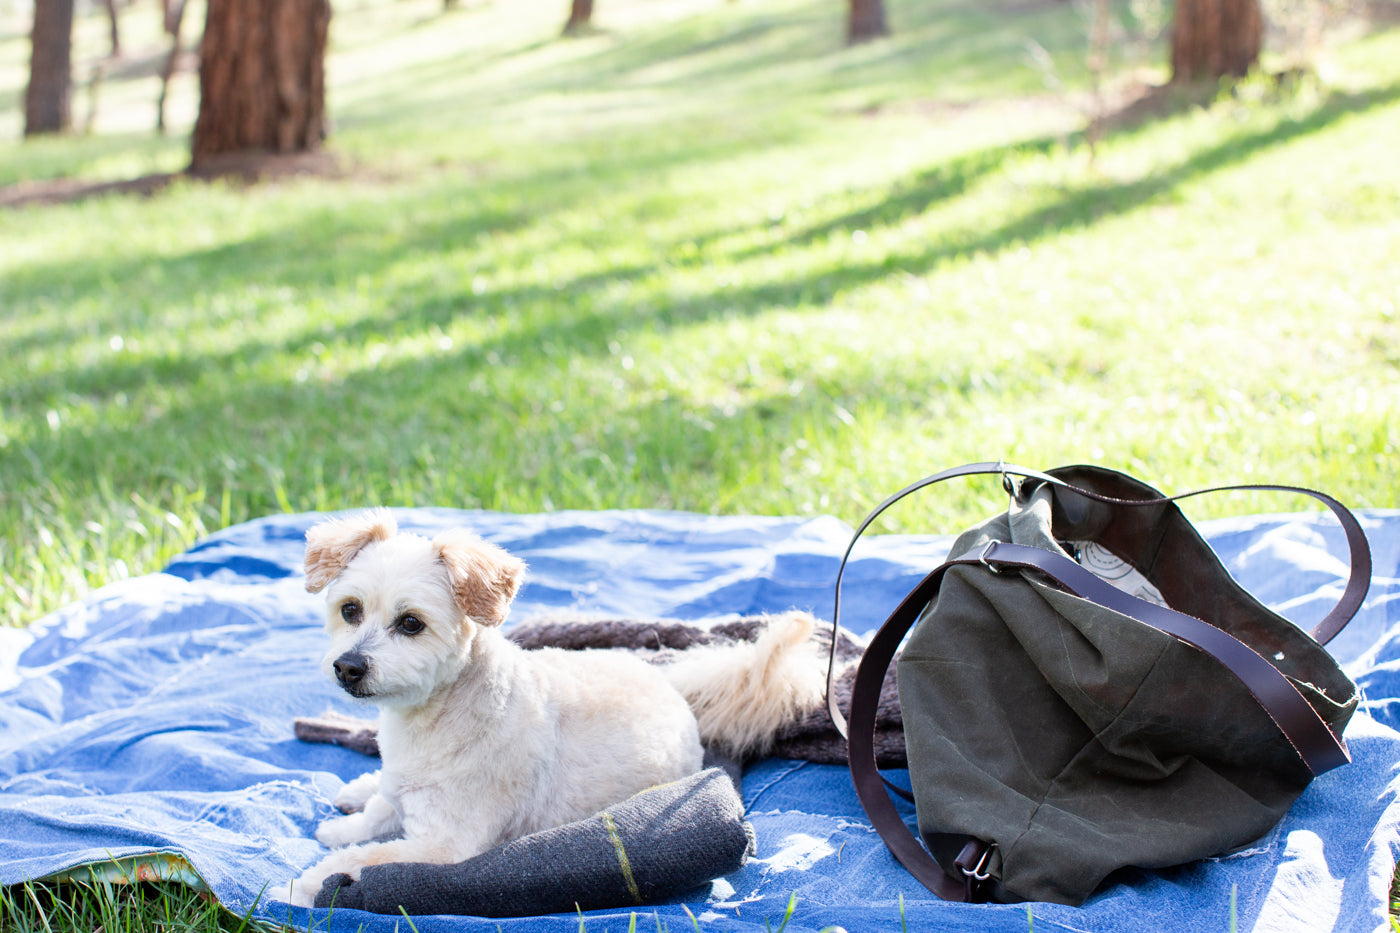 Photograph of a dog laying on a jean blanket in the grass with a evergreen waxed bag sitting beside the dog.